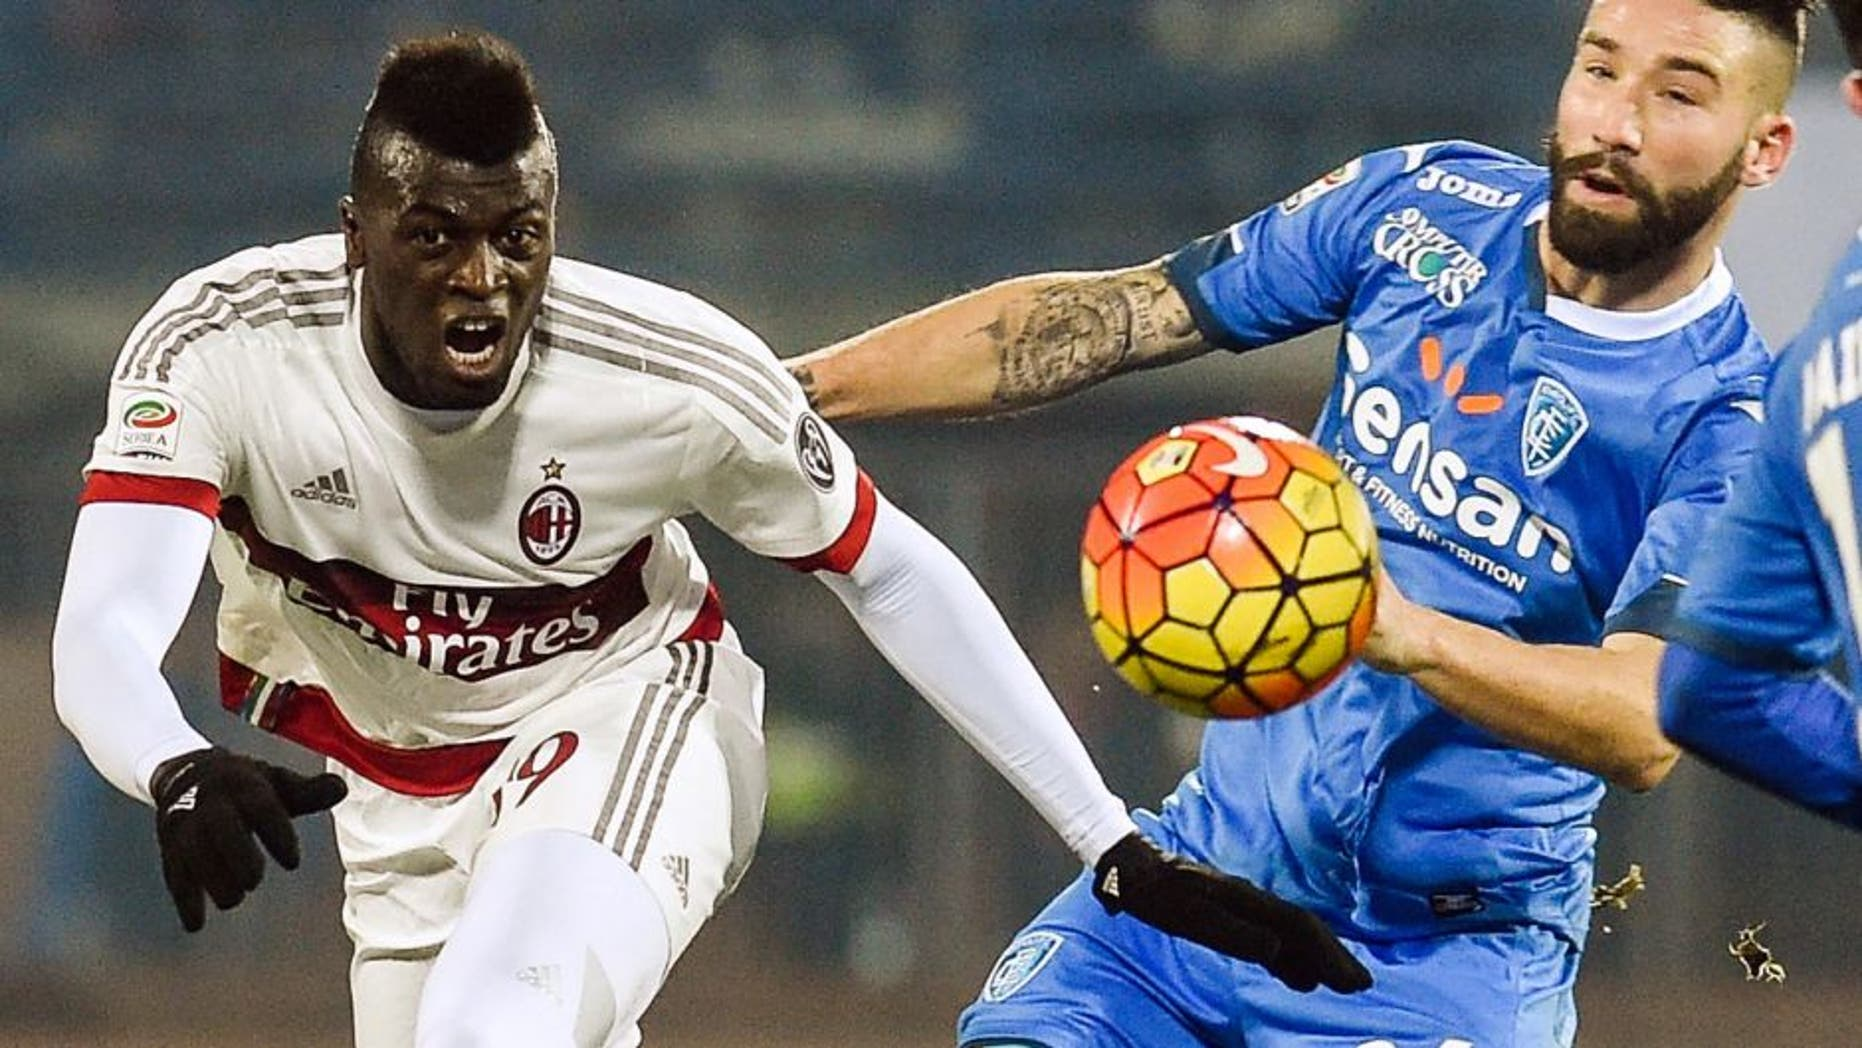 """AC Milan's forward from France Mbaye Niang (L) fights for the ball with Empoli's defender from Italy Lorenzo Tonelli during their Italian Serie A football match Empoli vs AC Milan, on January 23, 2016 at Empoli's """"Carlo Castellani"""" comunal stadium. / AFP / ANDREAS SOLARO (Photo credit should read ANDREAS SOLARO/AFP/Getty Images)"""